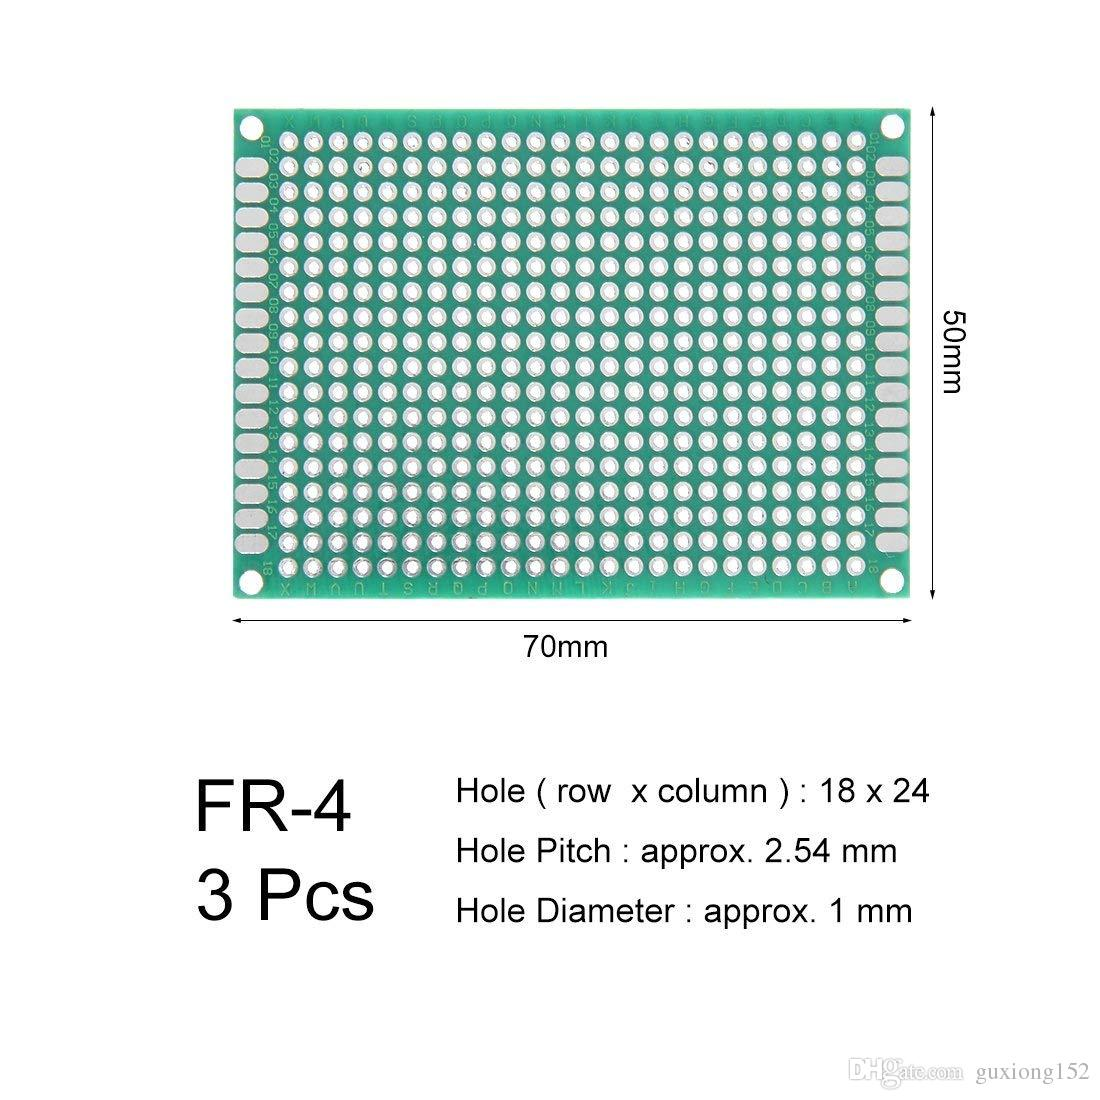 5x7mm Double Sided Prototype Pcb Print Circuit Board Universal Details About 12 Pcs Kit Prototyping Printed Breadboard 14